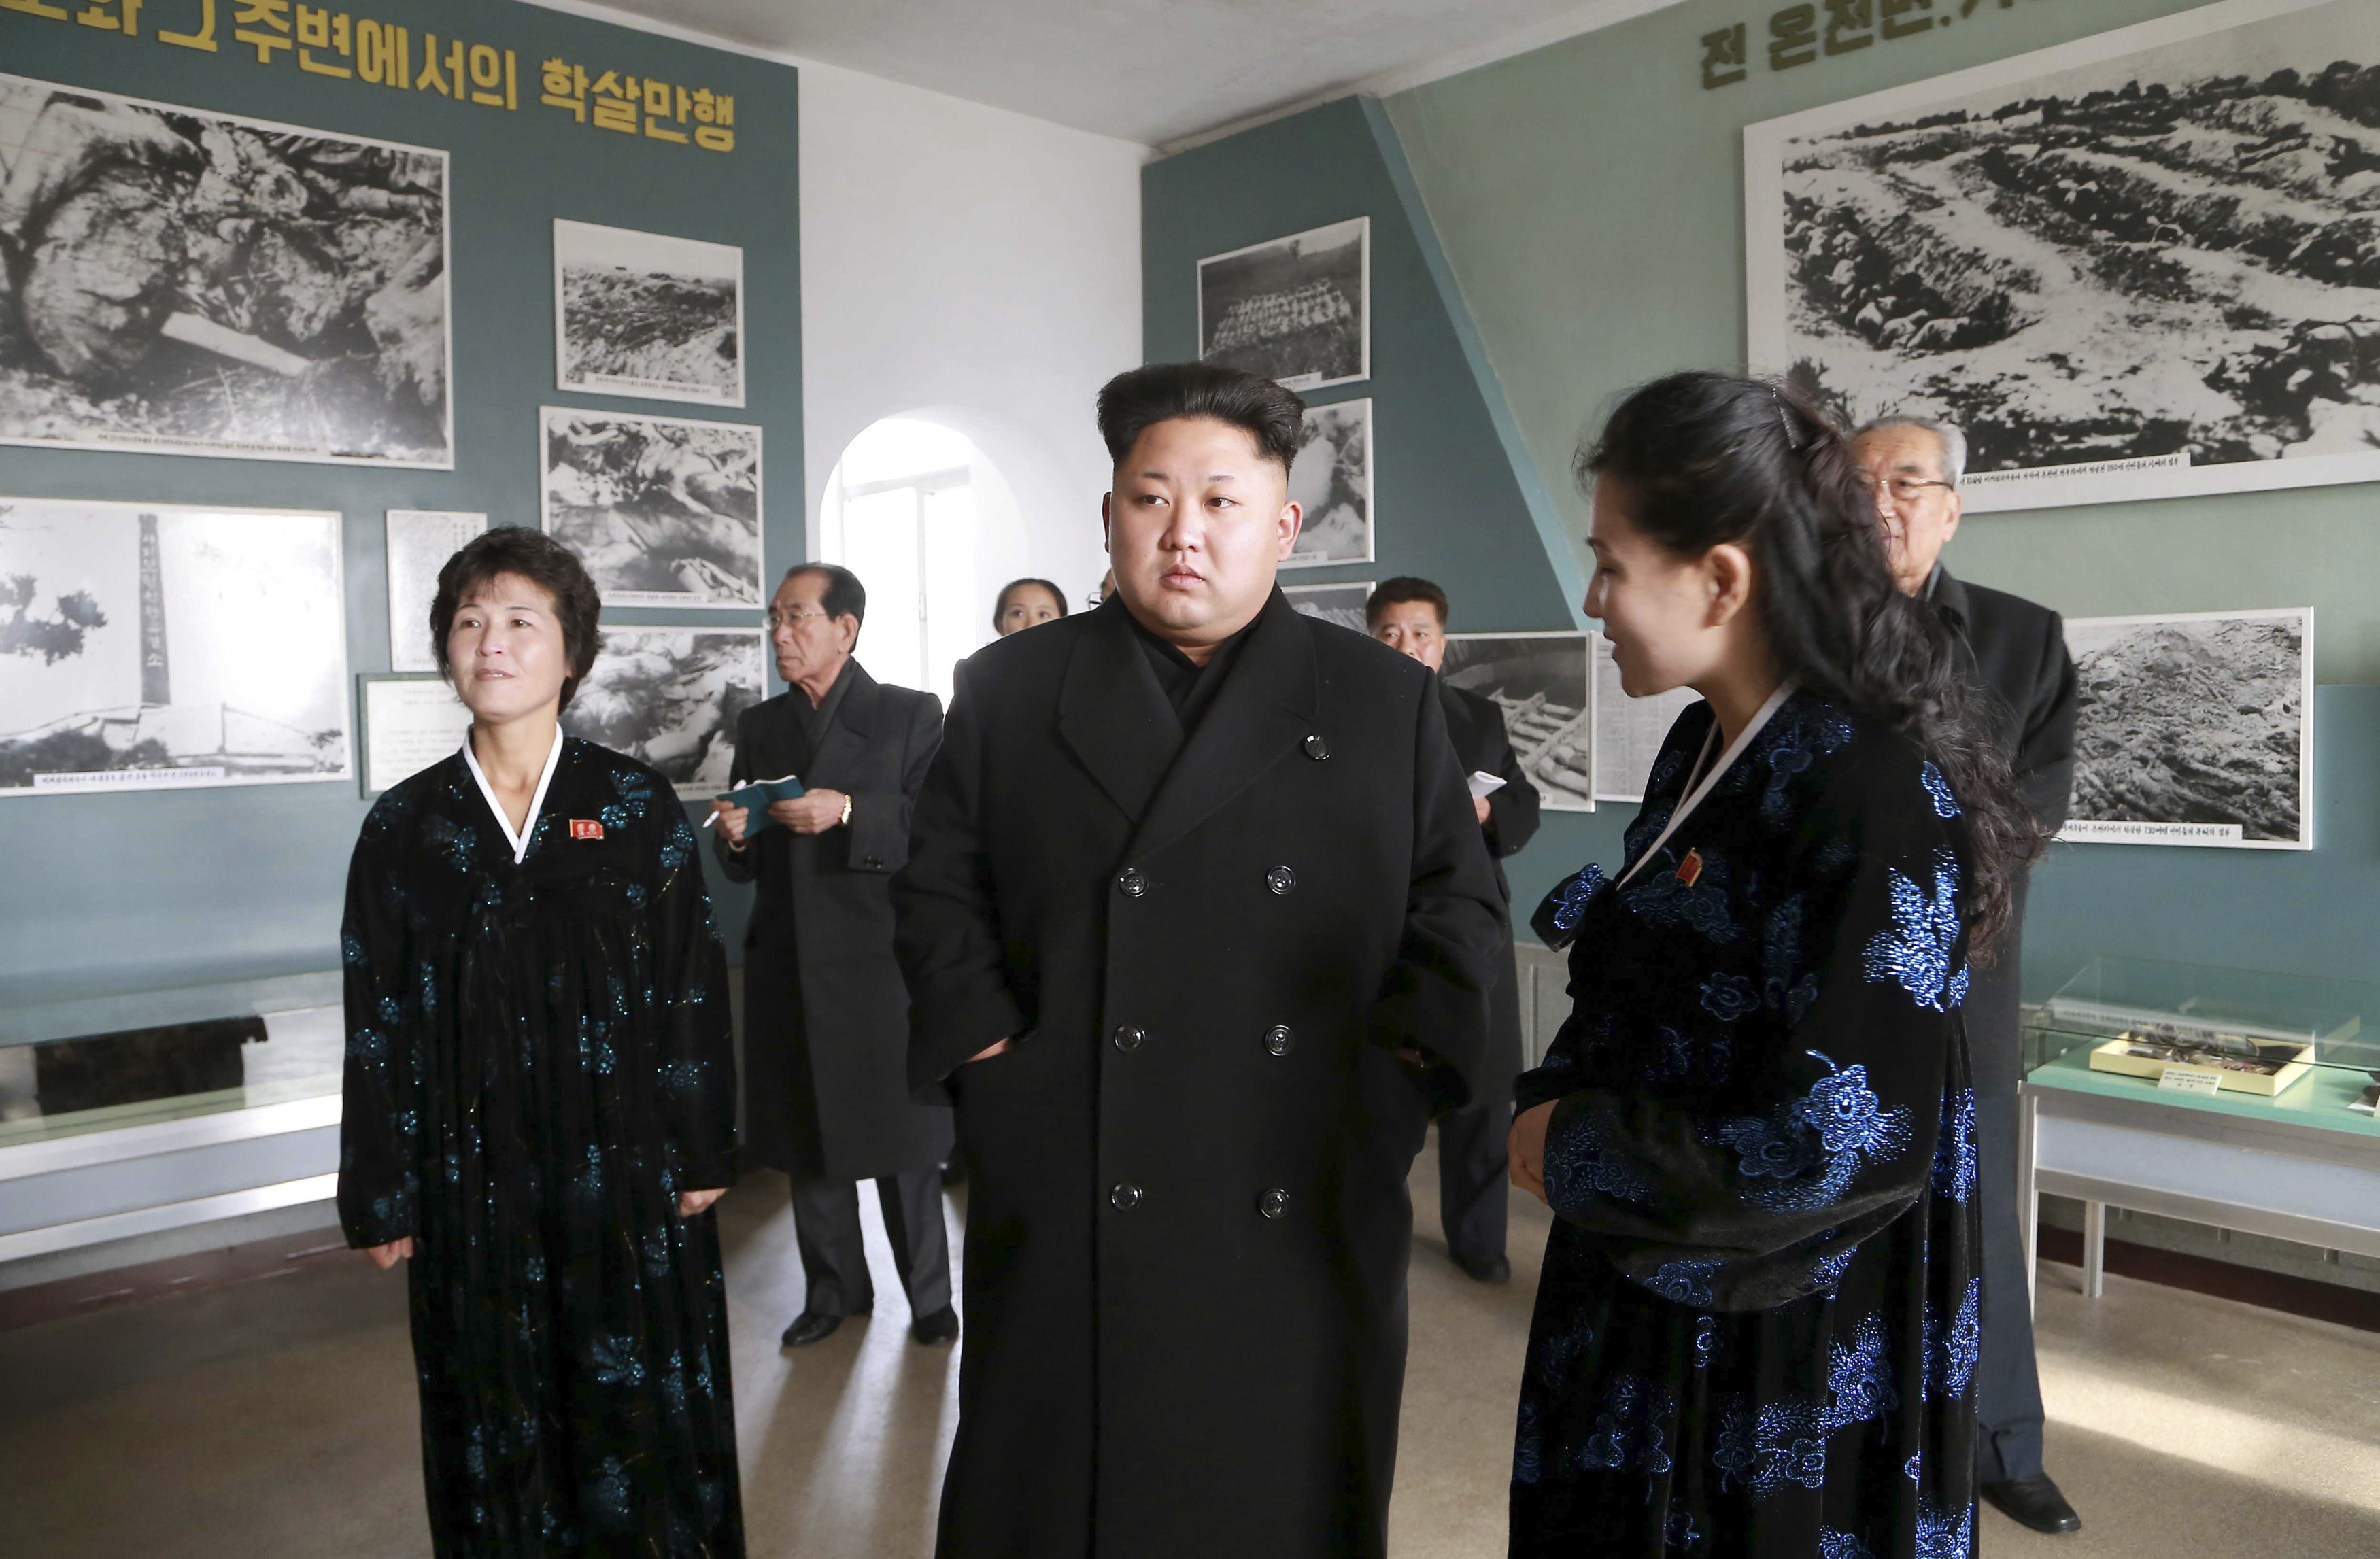 North Korean leader Kim Jong Un gives field guidance to the Sinchon Museum in Pyongyang in this undated photo released by the state-run Korean Central News Agency on Nov. 25, 2014